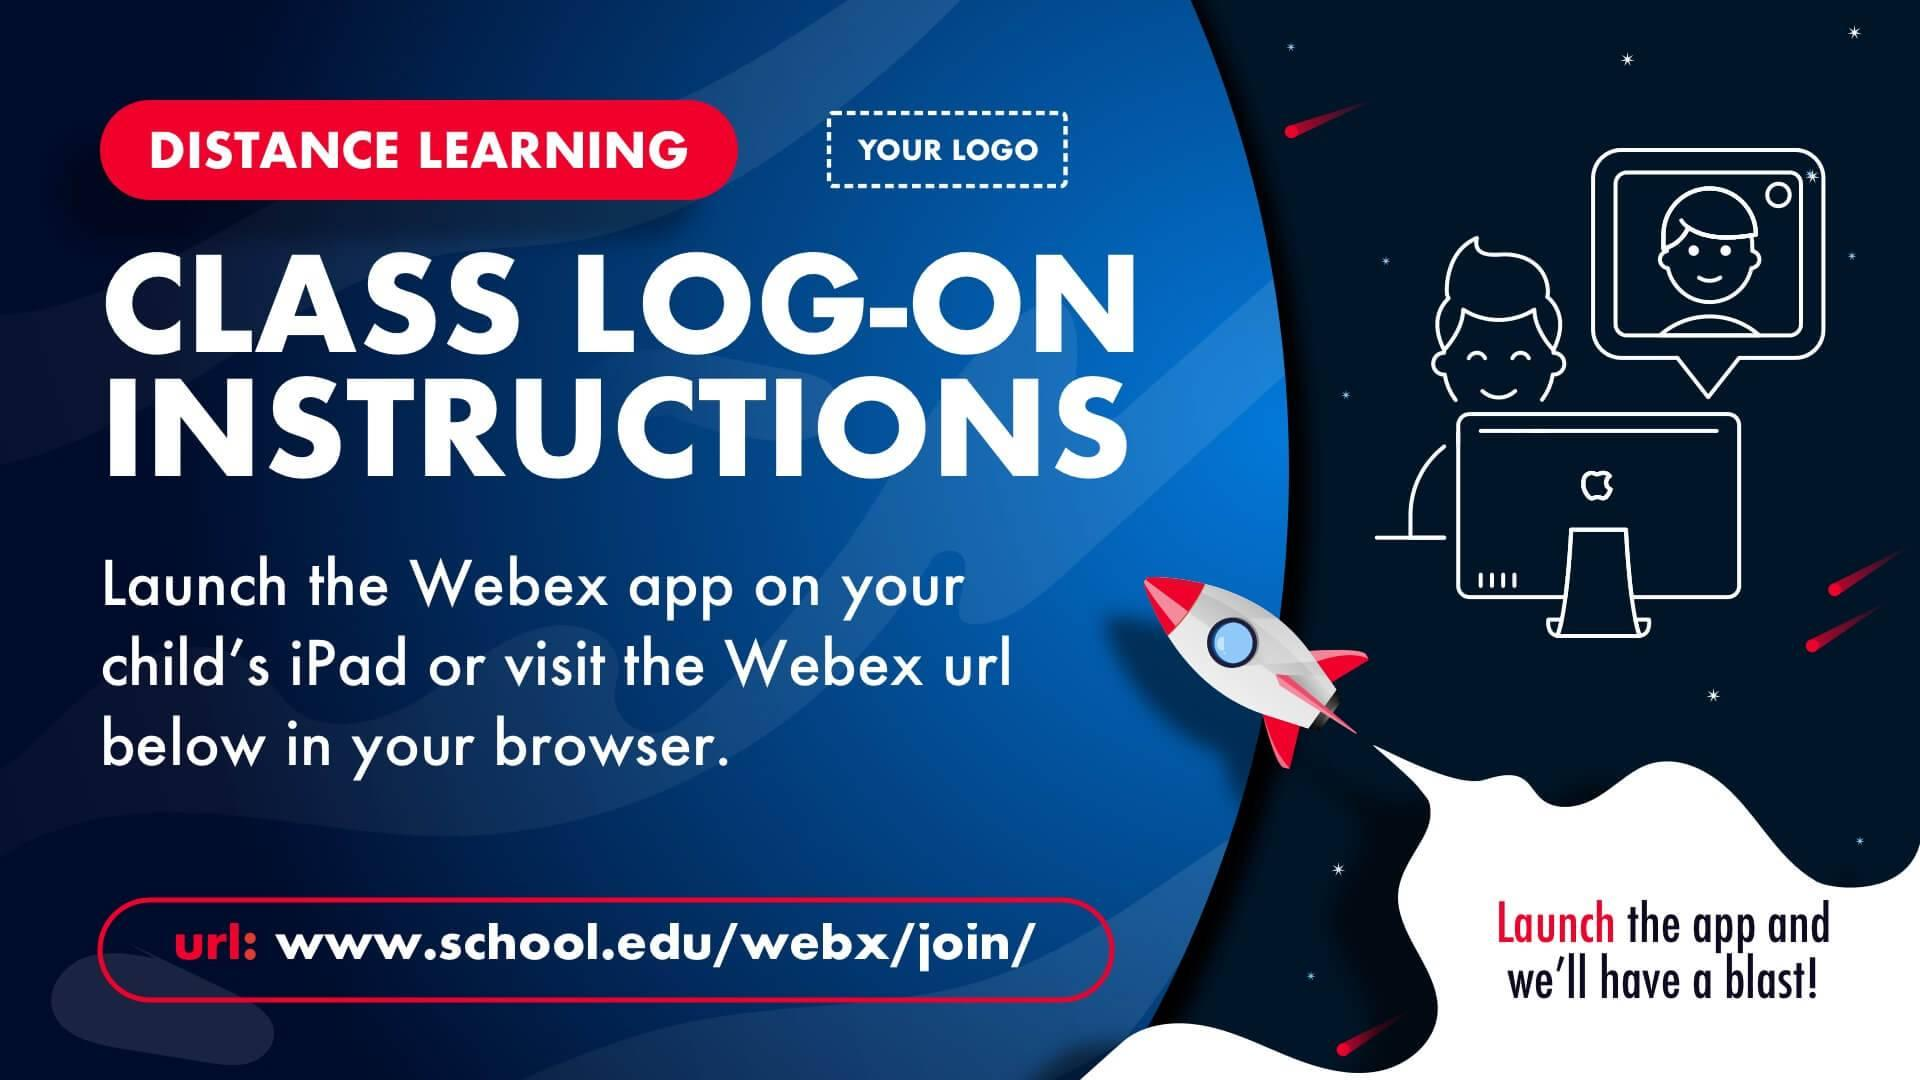 Log-On Instructions Distance Learning Digital Signage Template